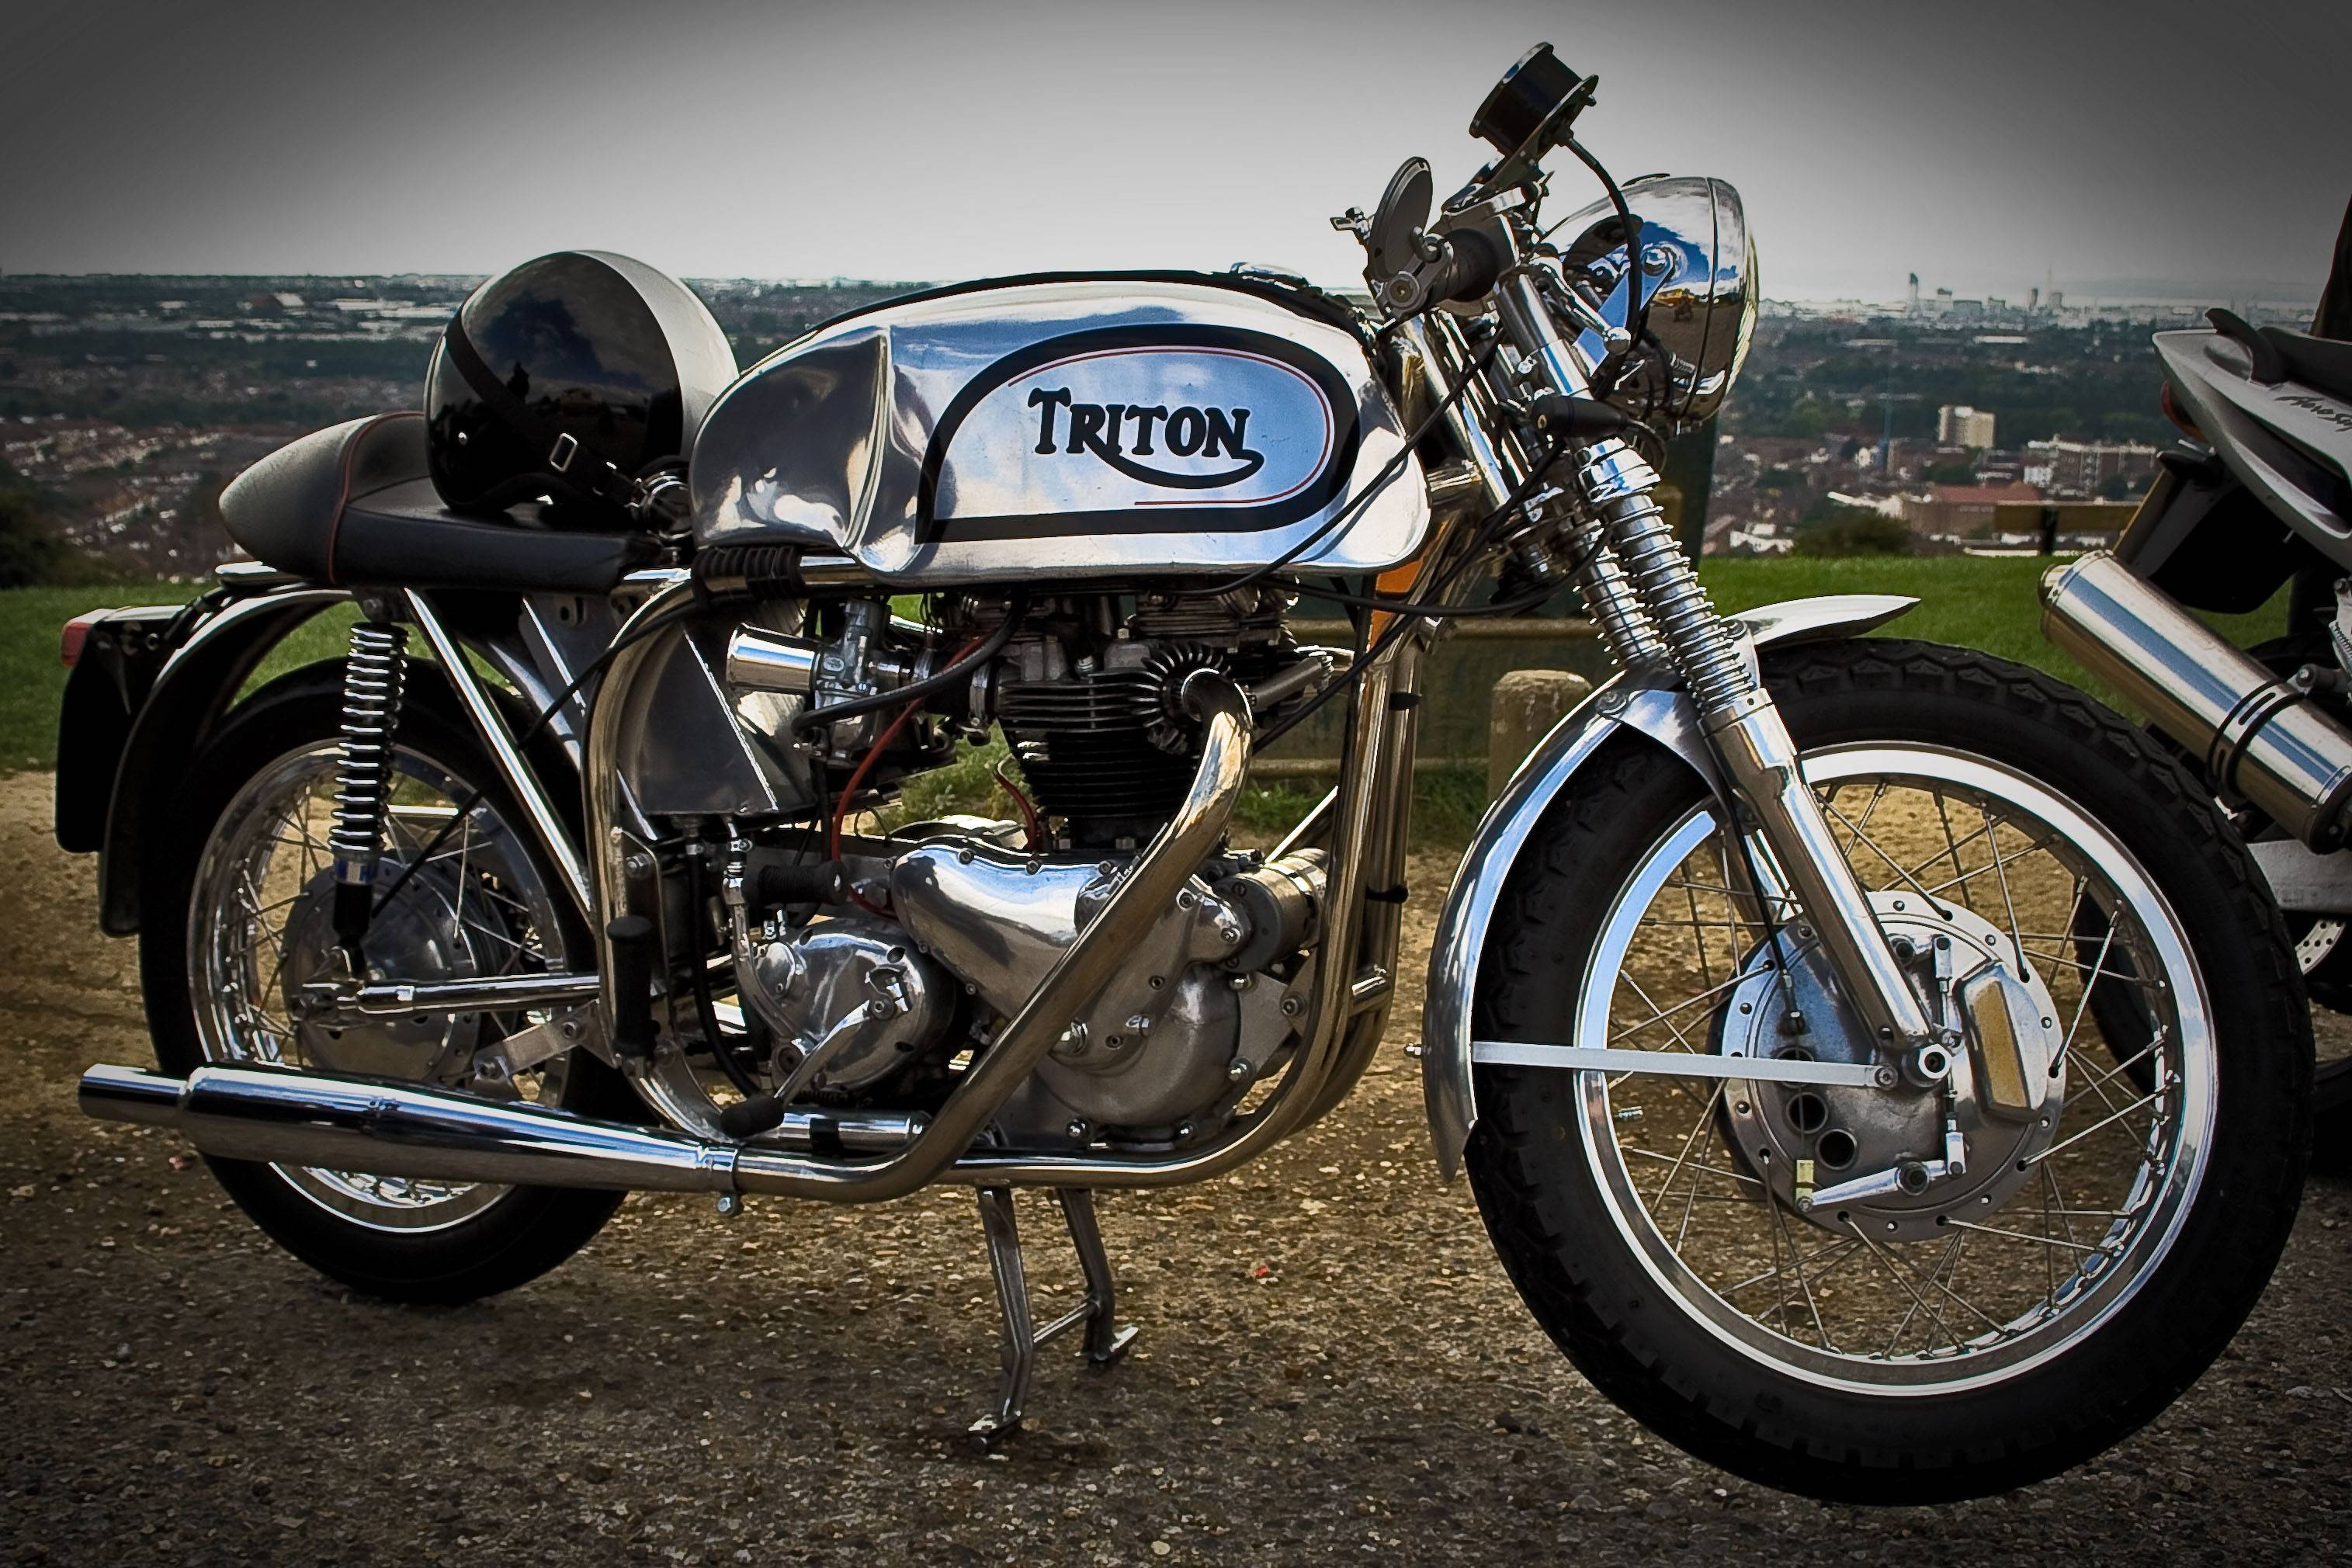 Triumph Motorcycle Wallpapers - Wallpaper Cave